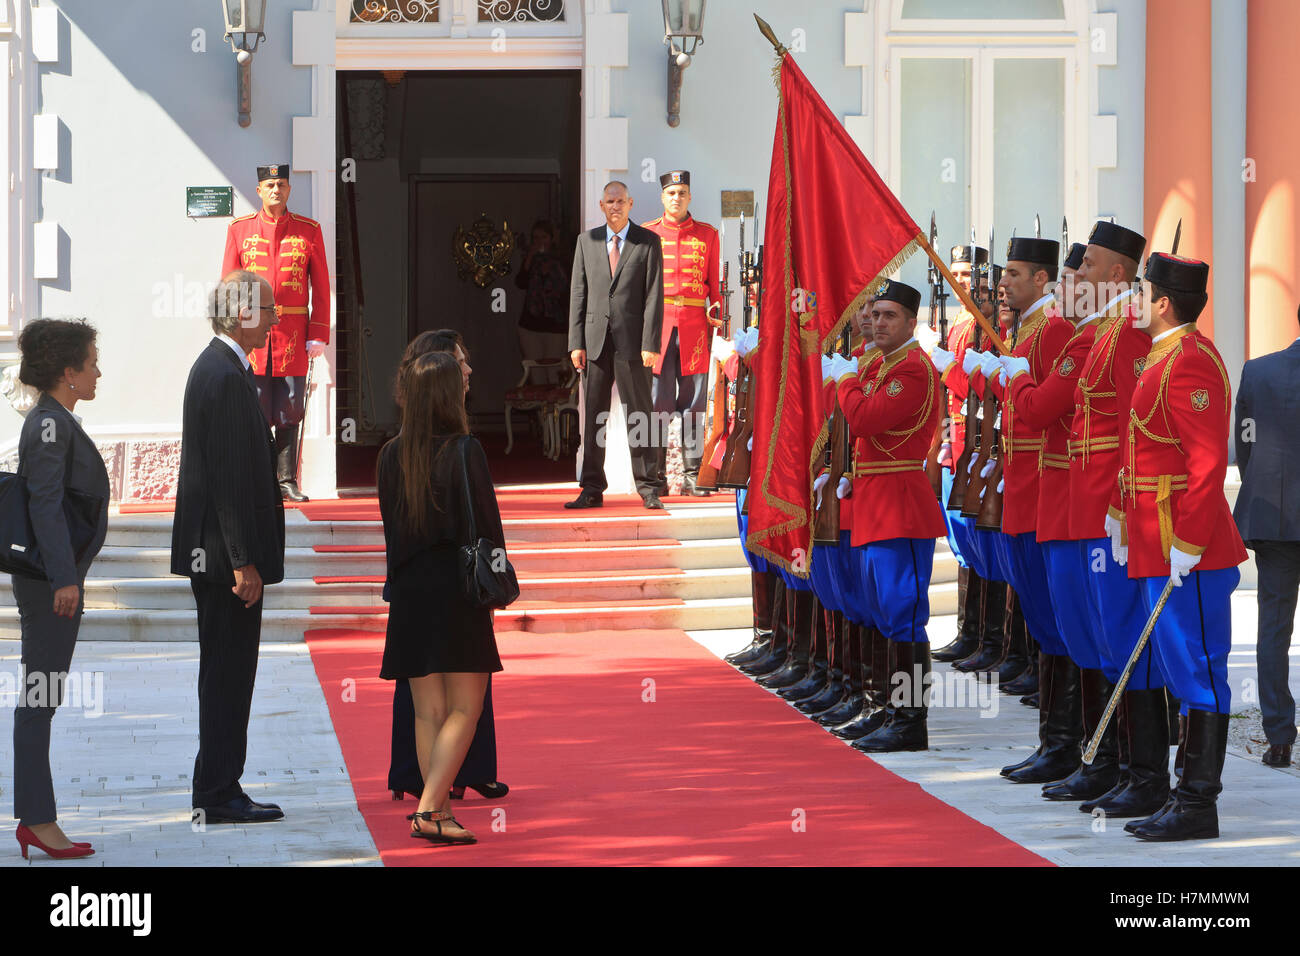 The presidential guard at the entrance of the residence of the President of Montenegro in Cetinje Stock Photo